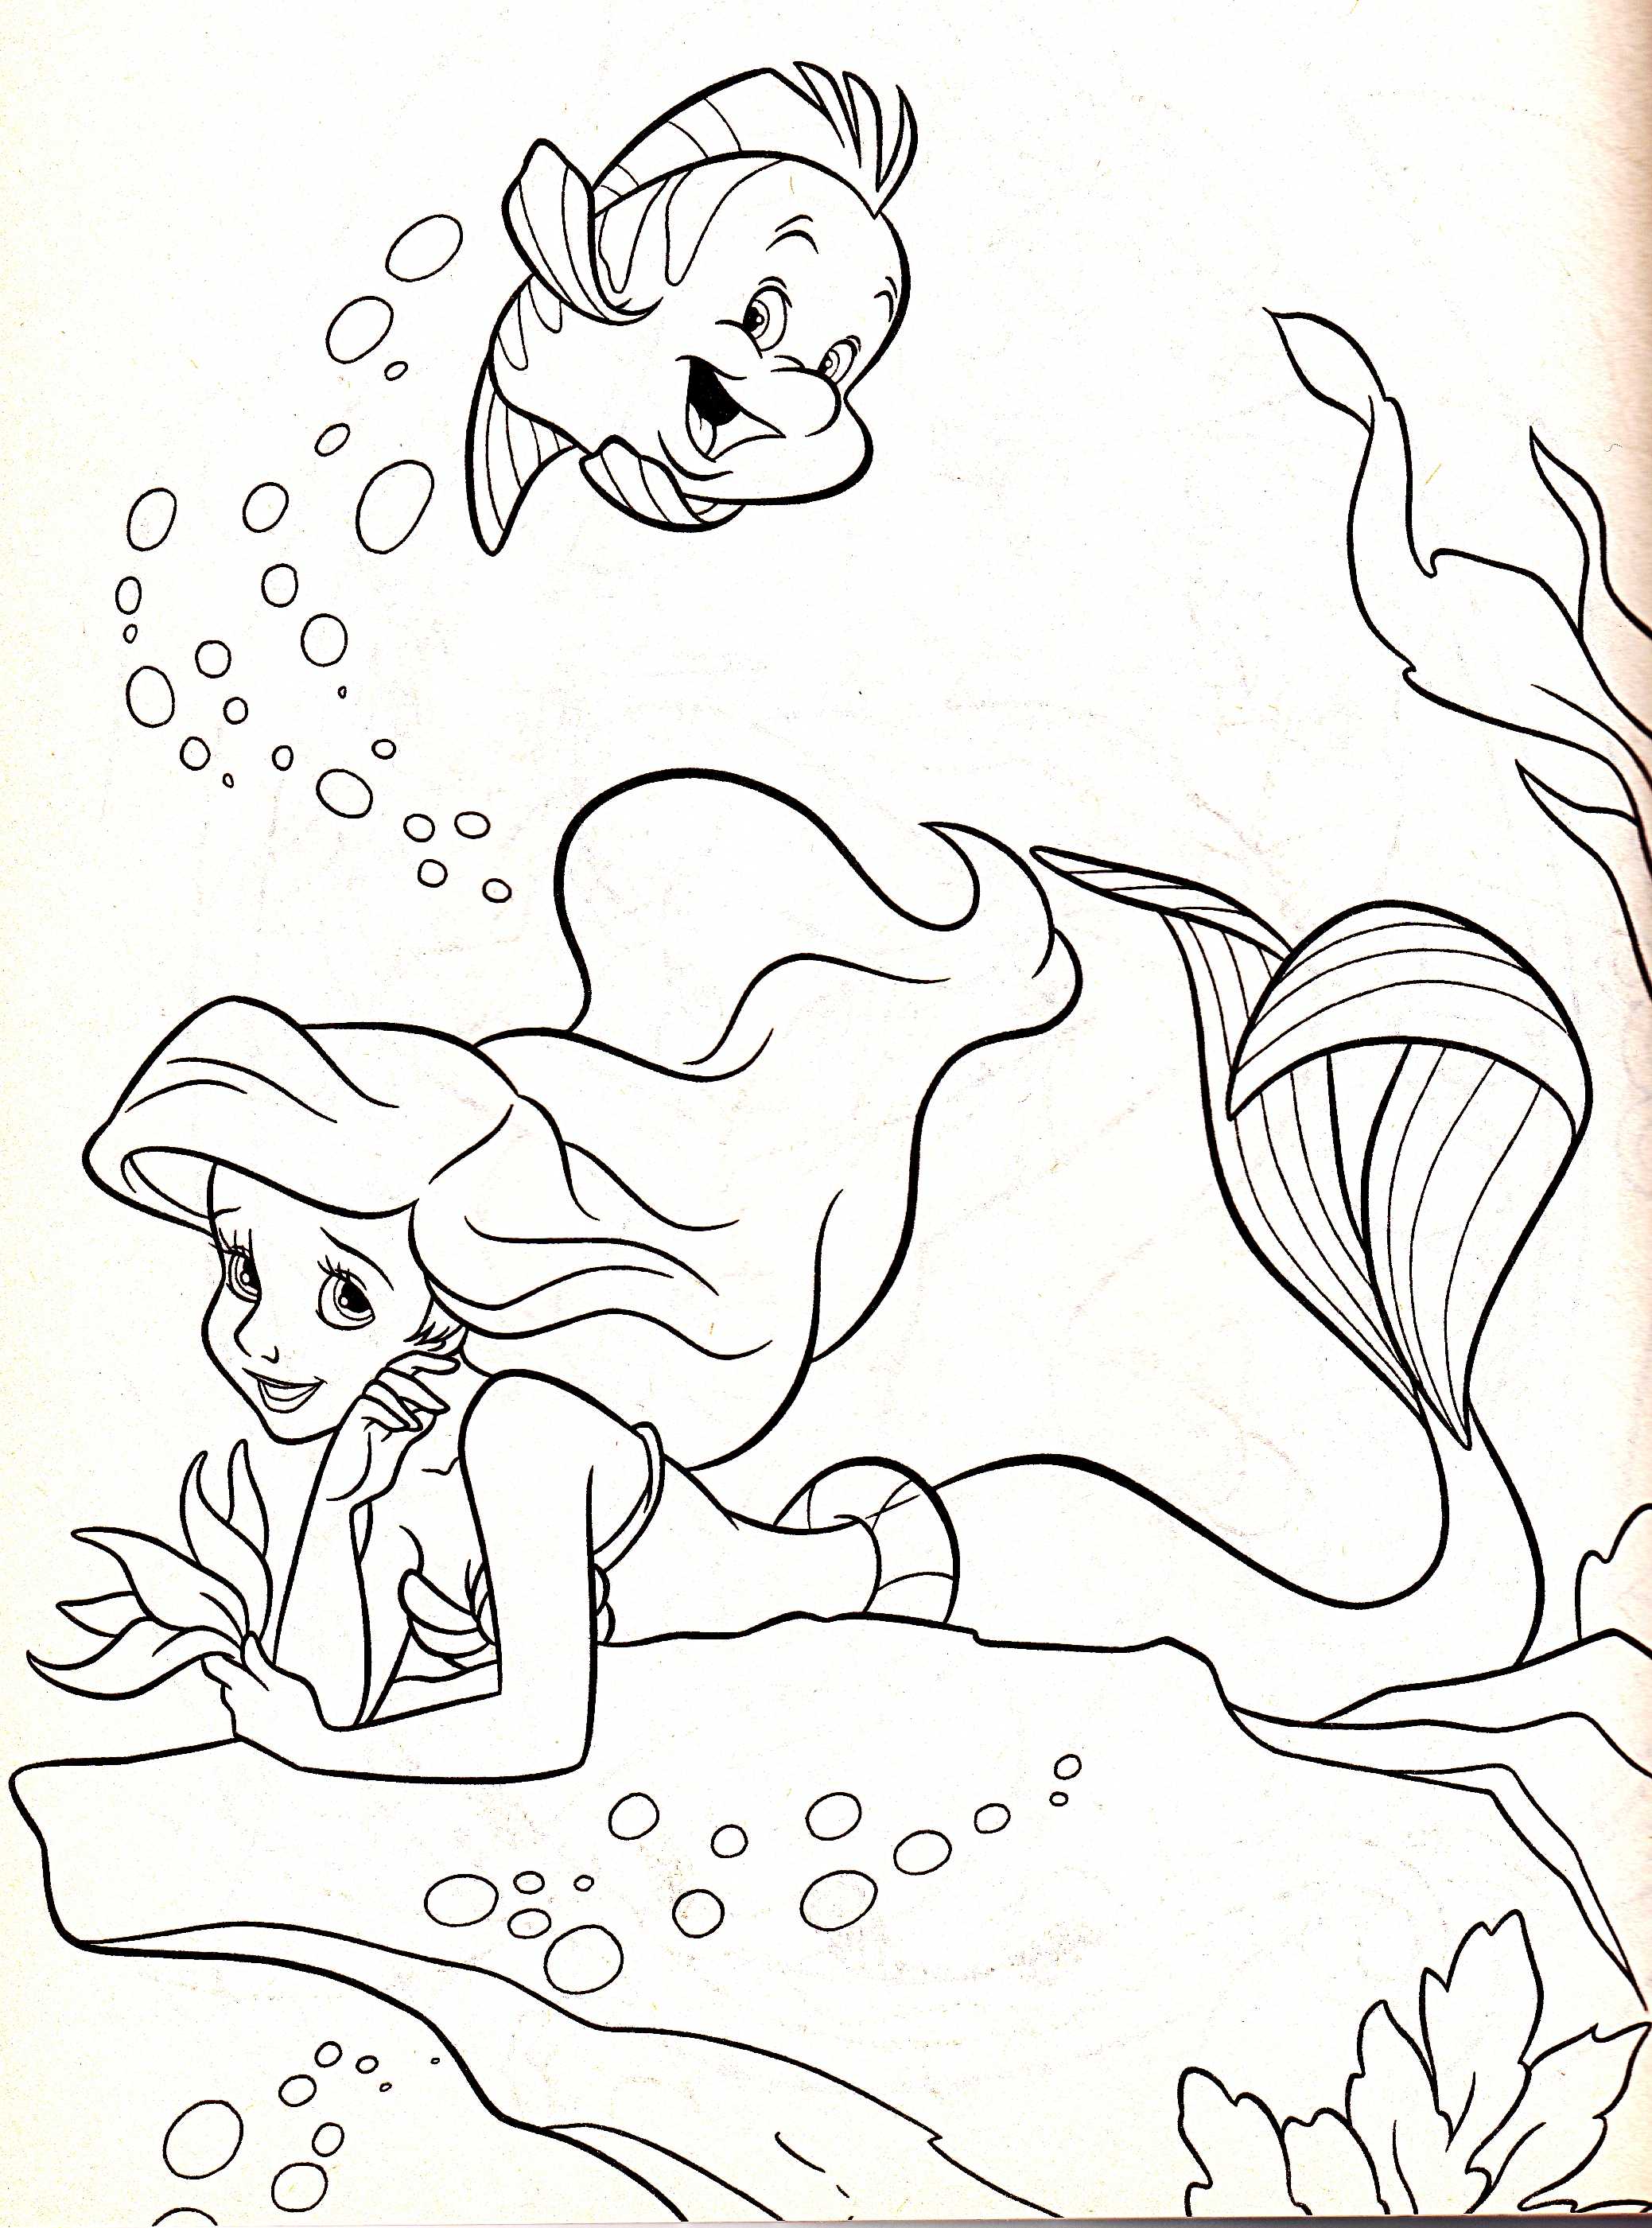 Walt Disney Coloring Pages - Flounder & Princess Ariel